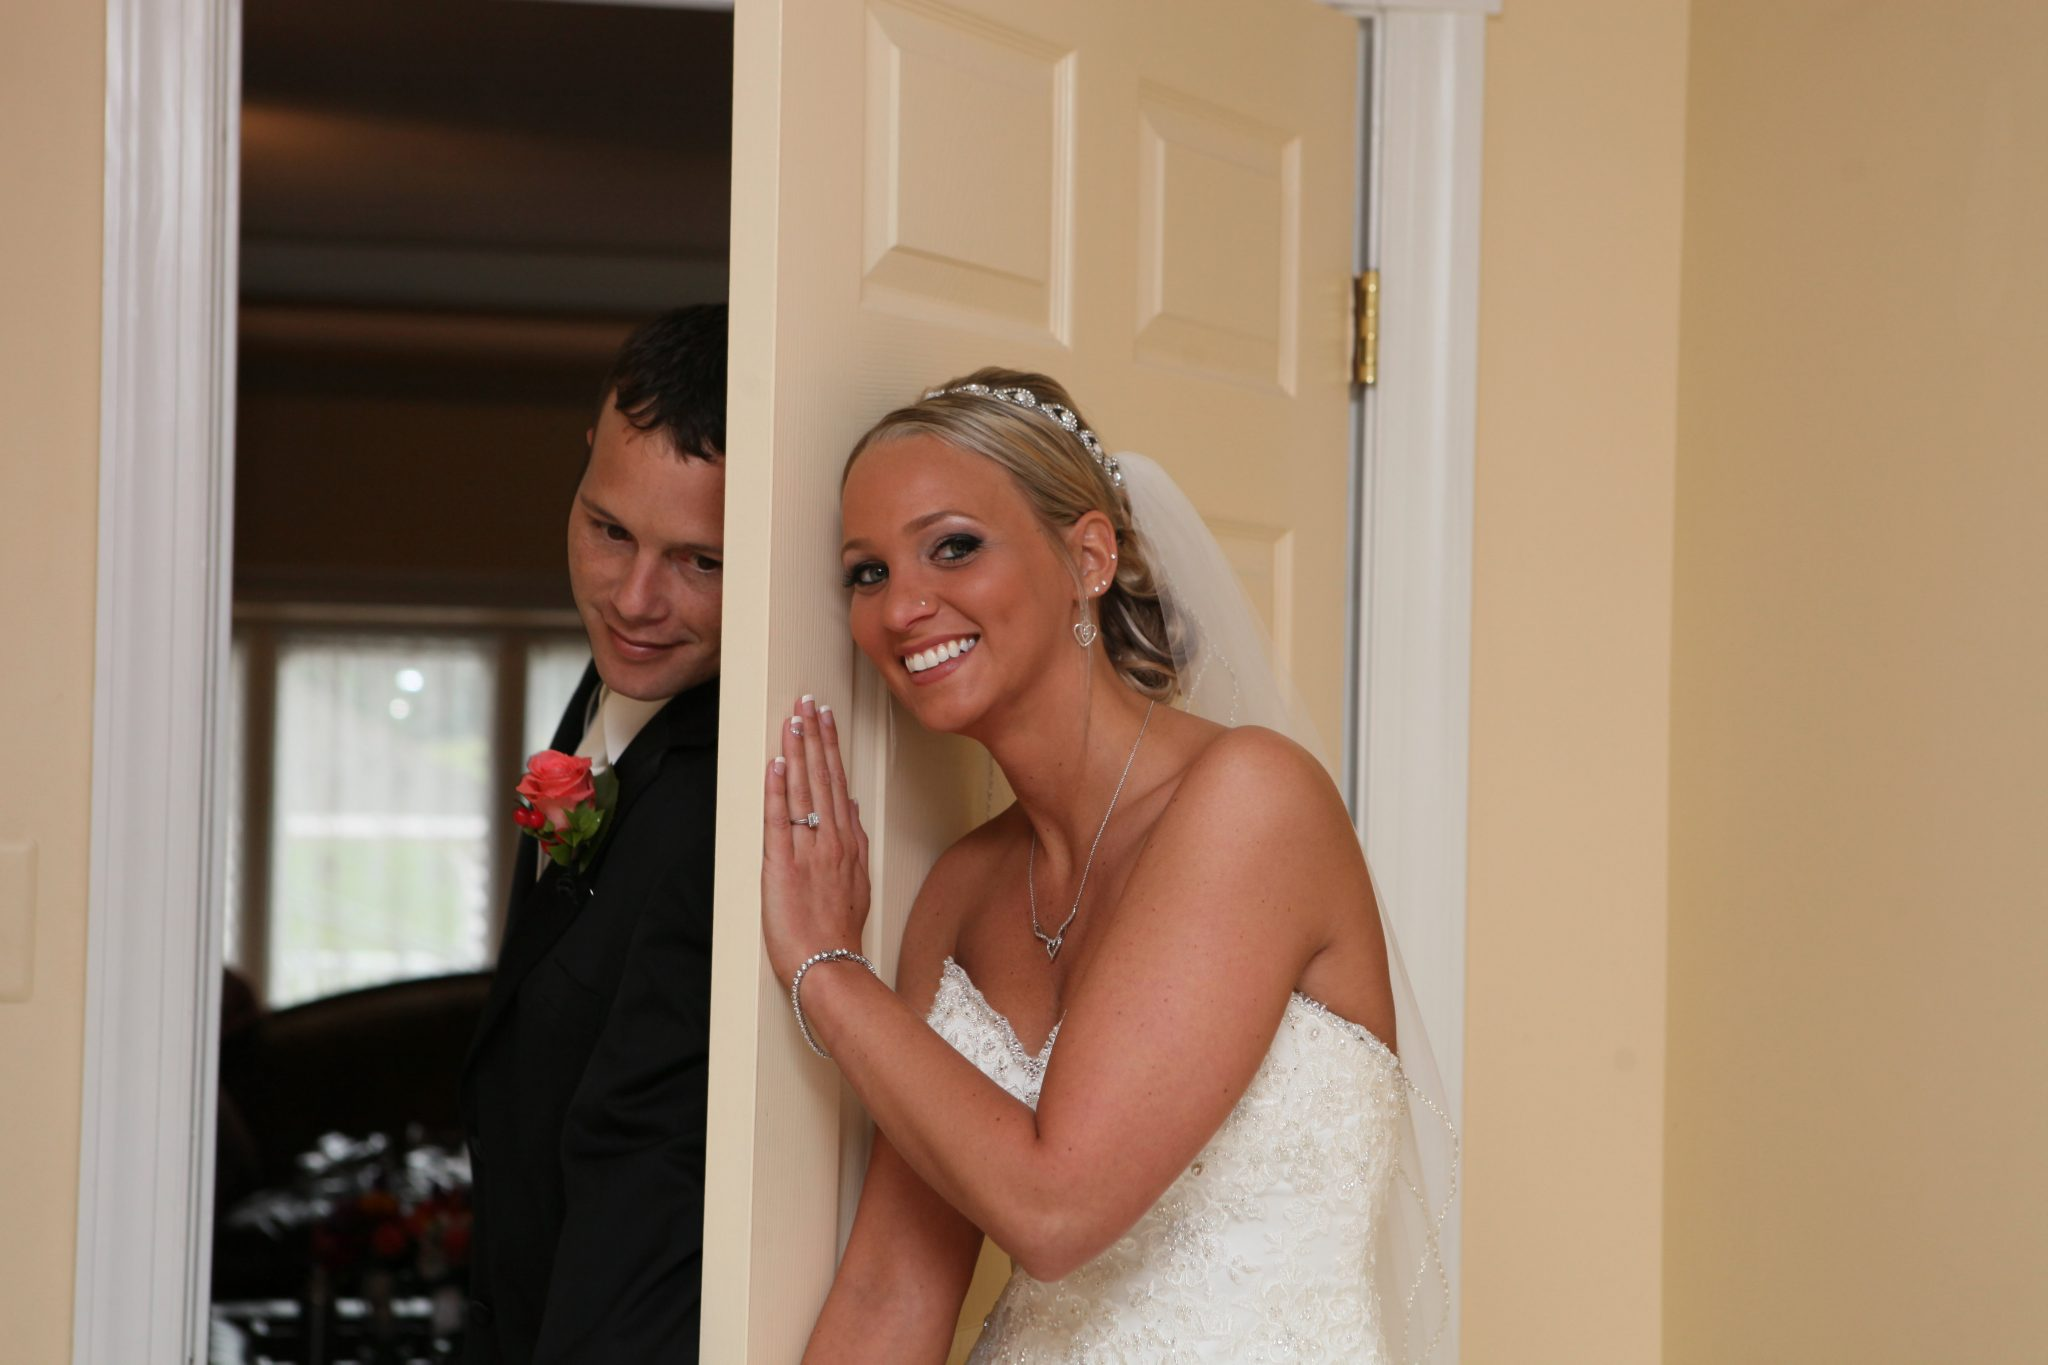 Bride and groom are kept separated before the wedding ceremony